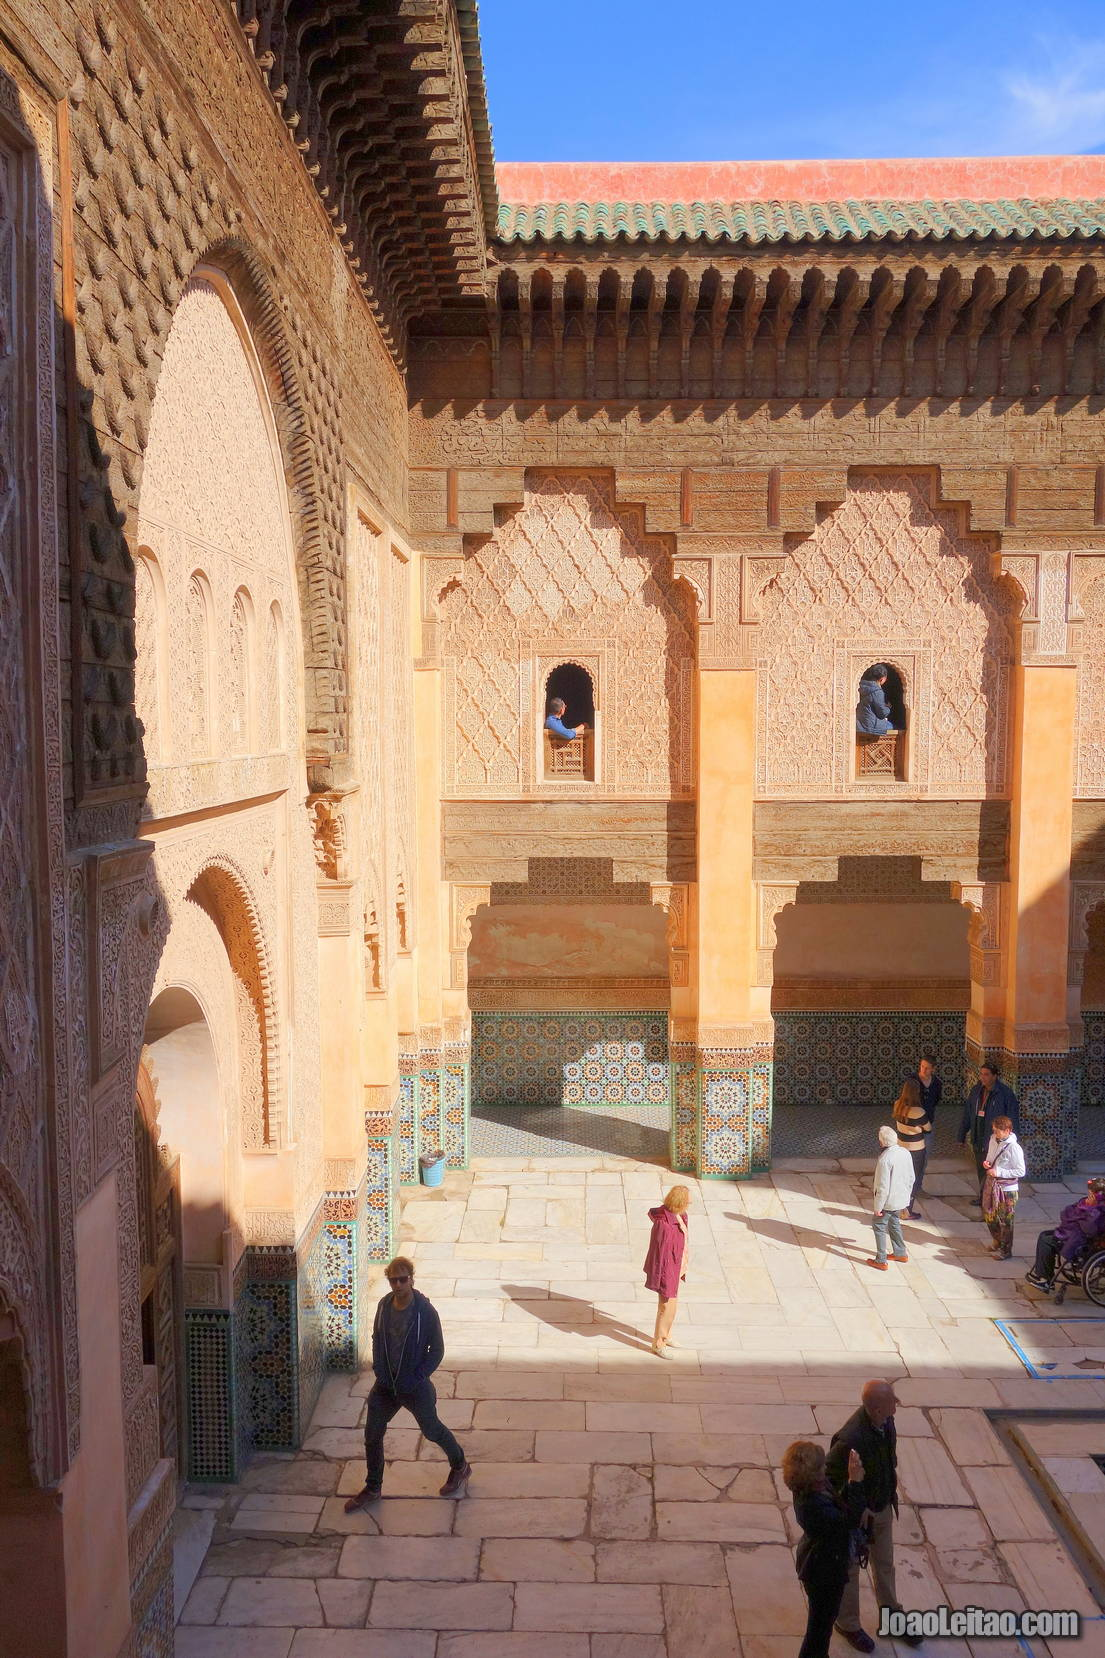 Ben Youssef Madrasa in Marrakesh